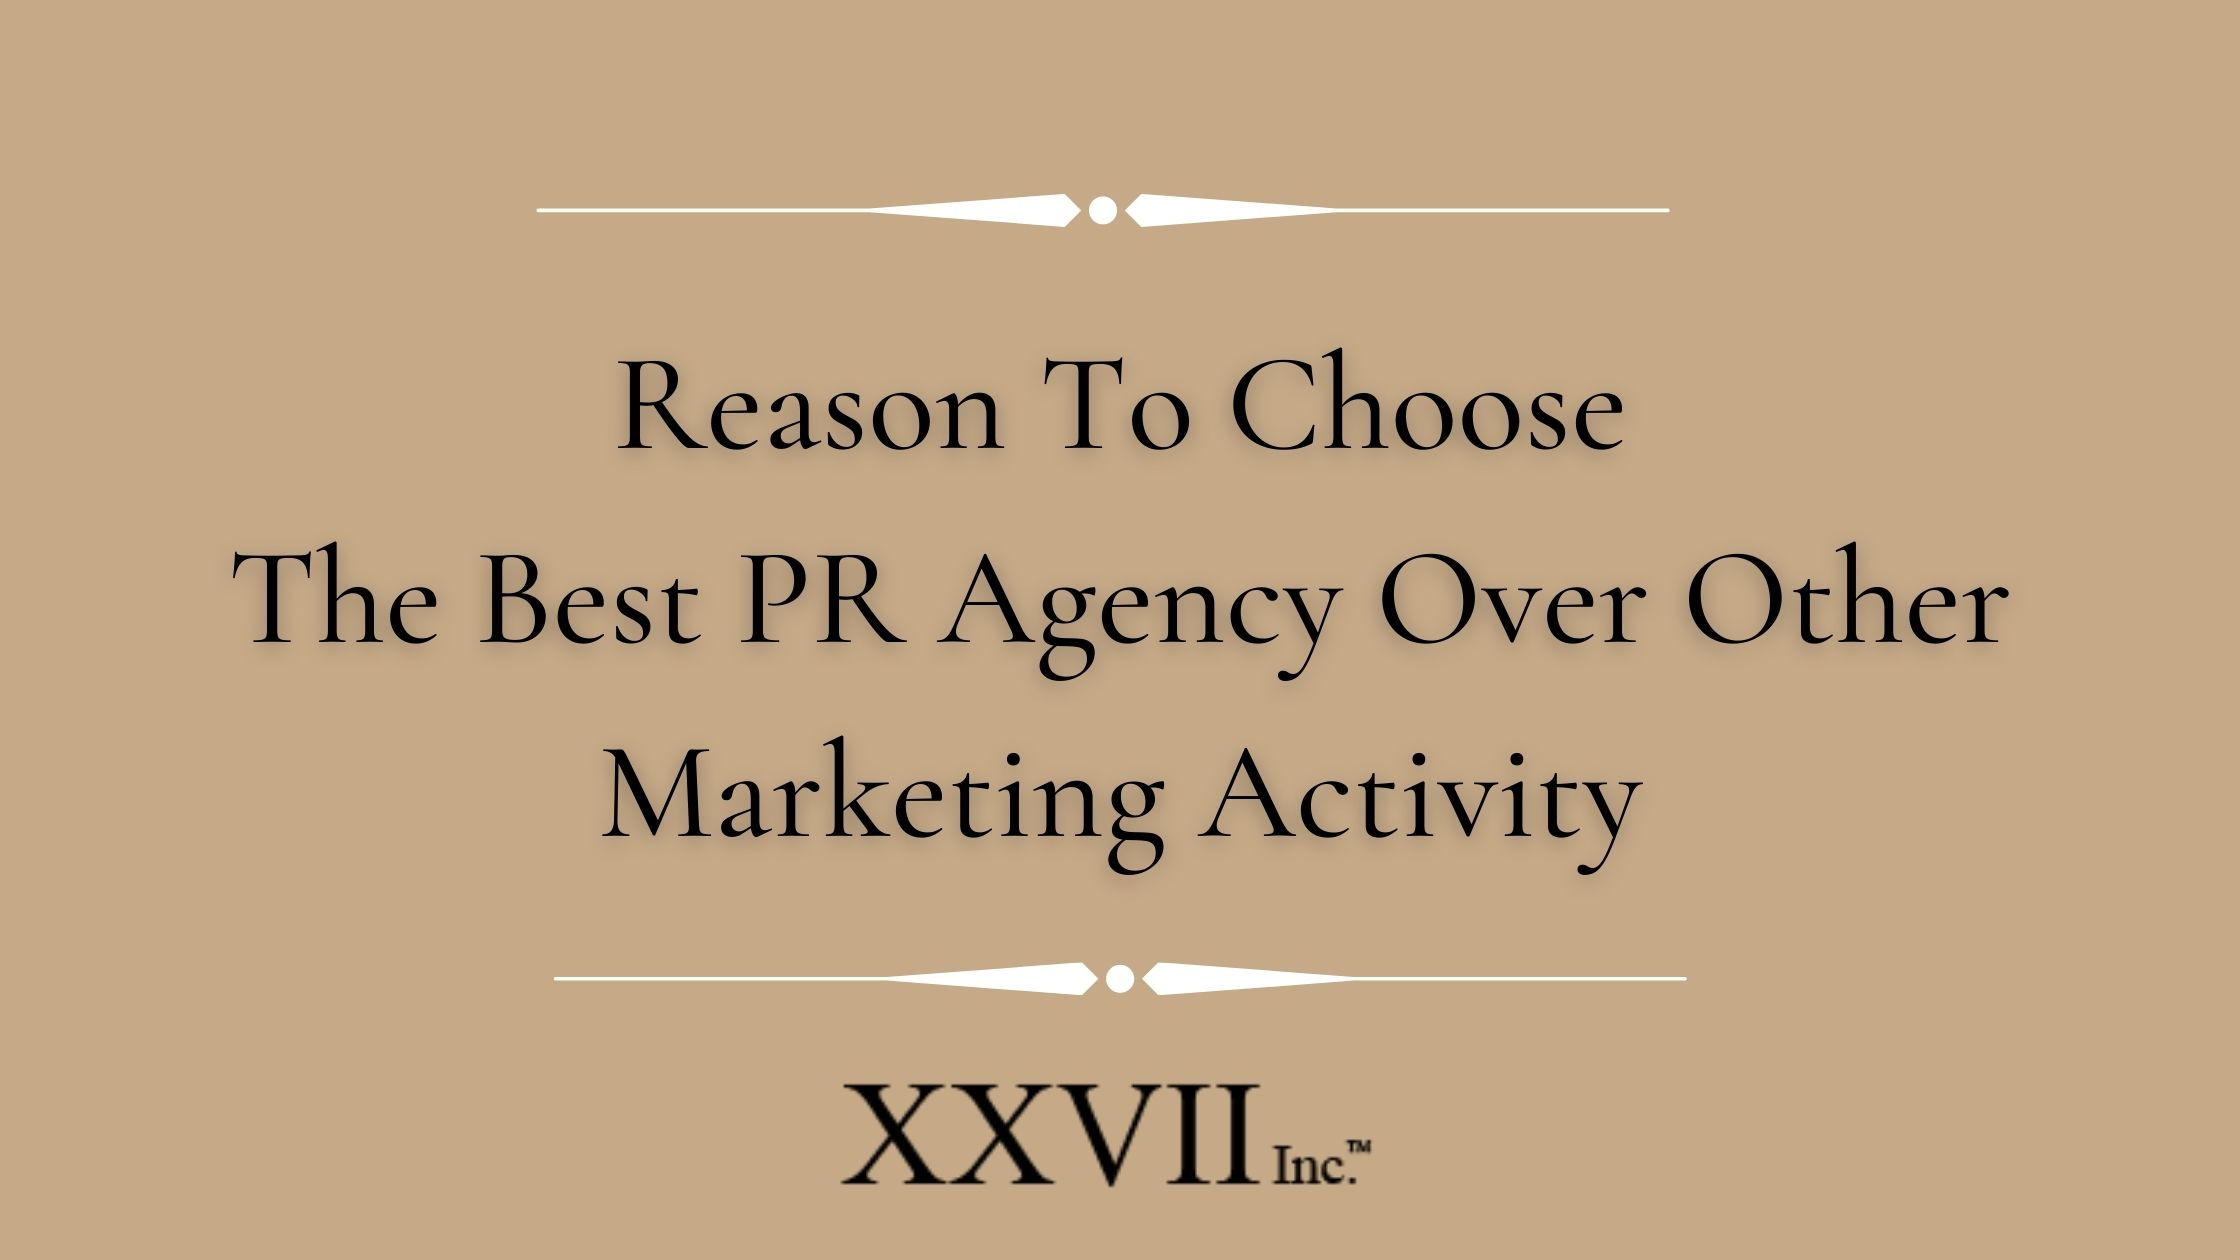 Reason To Choose The Best PR Agency Over Other Marketing Activity